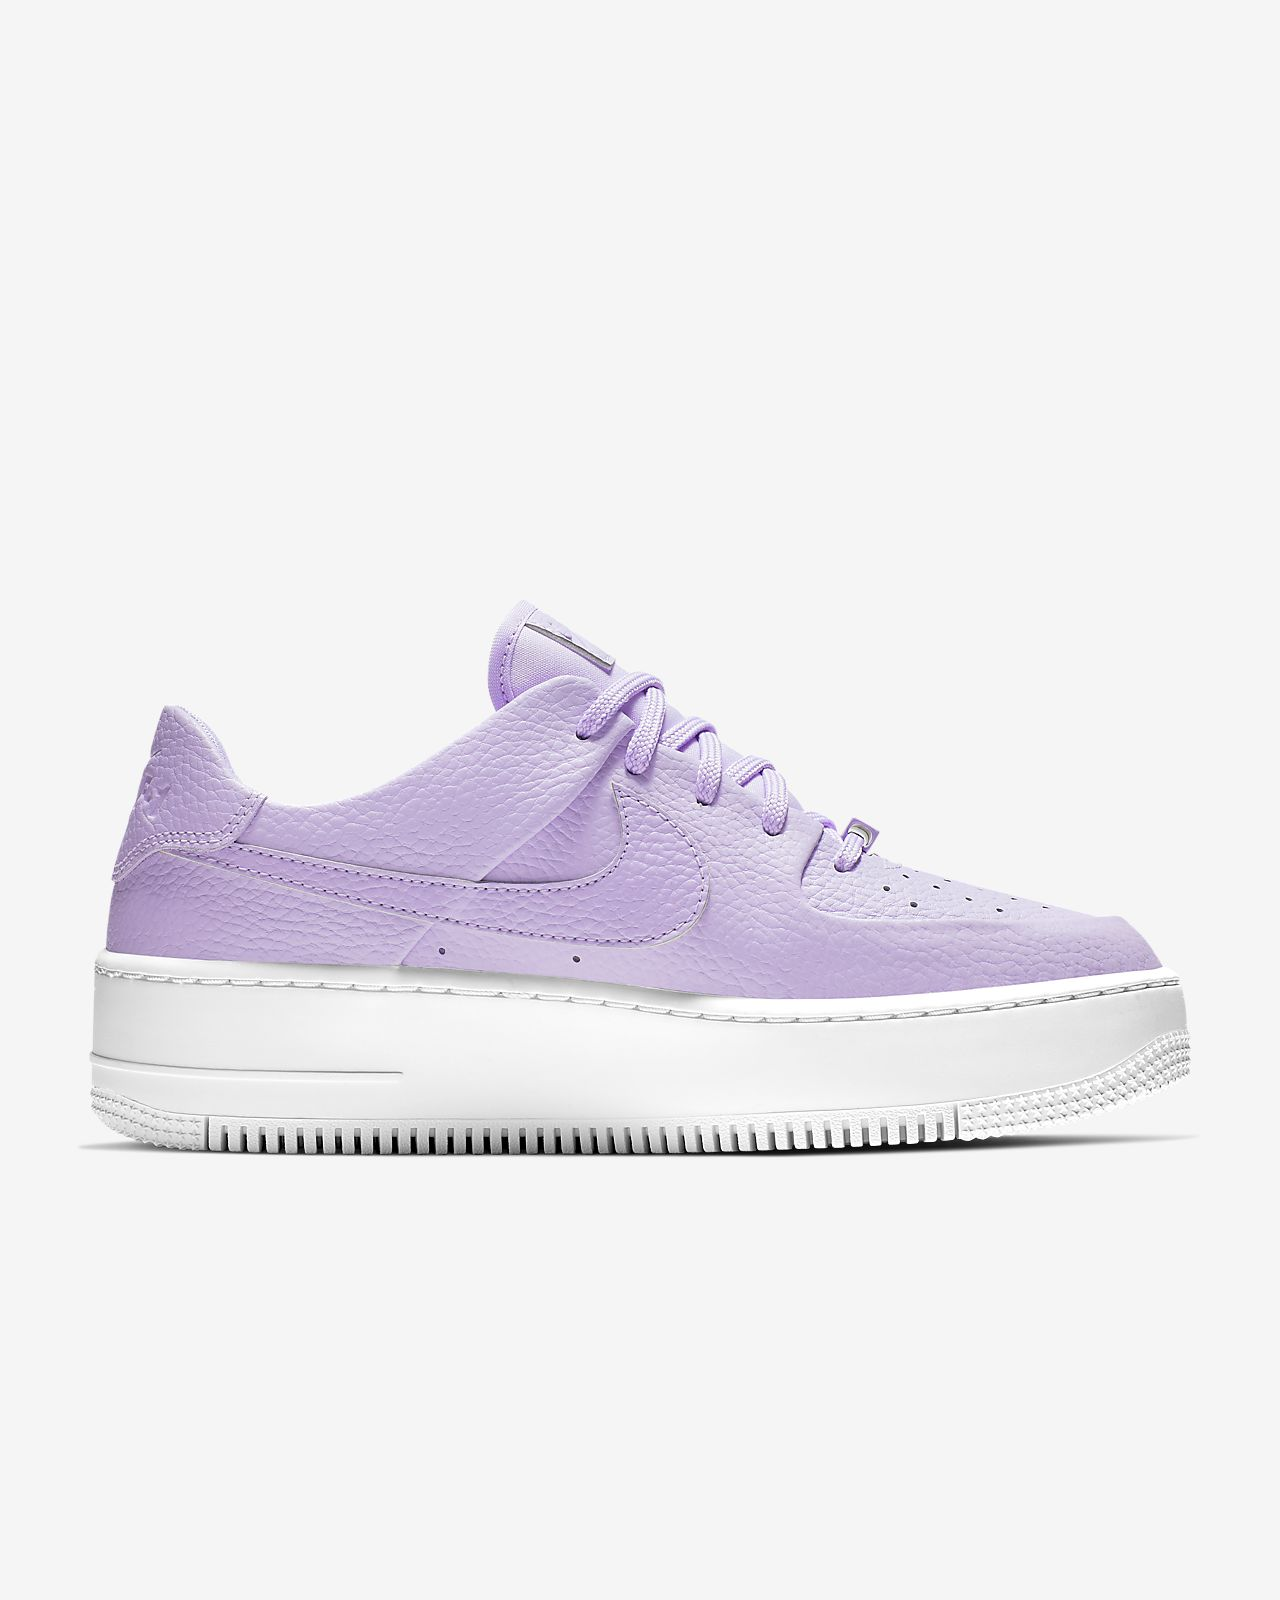 official photos 3c8f6 19cb6 ... Chaussure Nike Air Force 1 Sage Low pour Femme